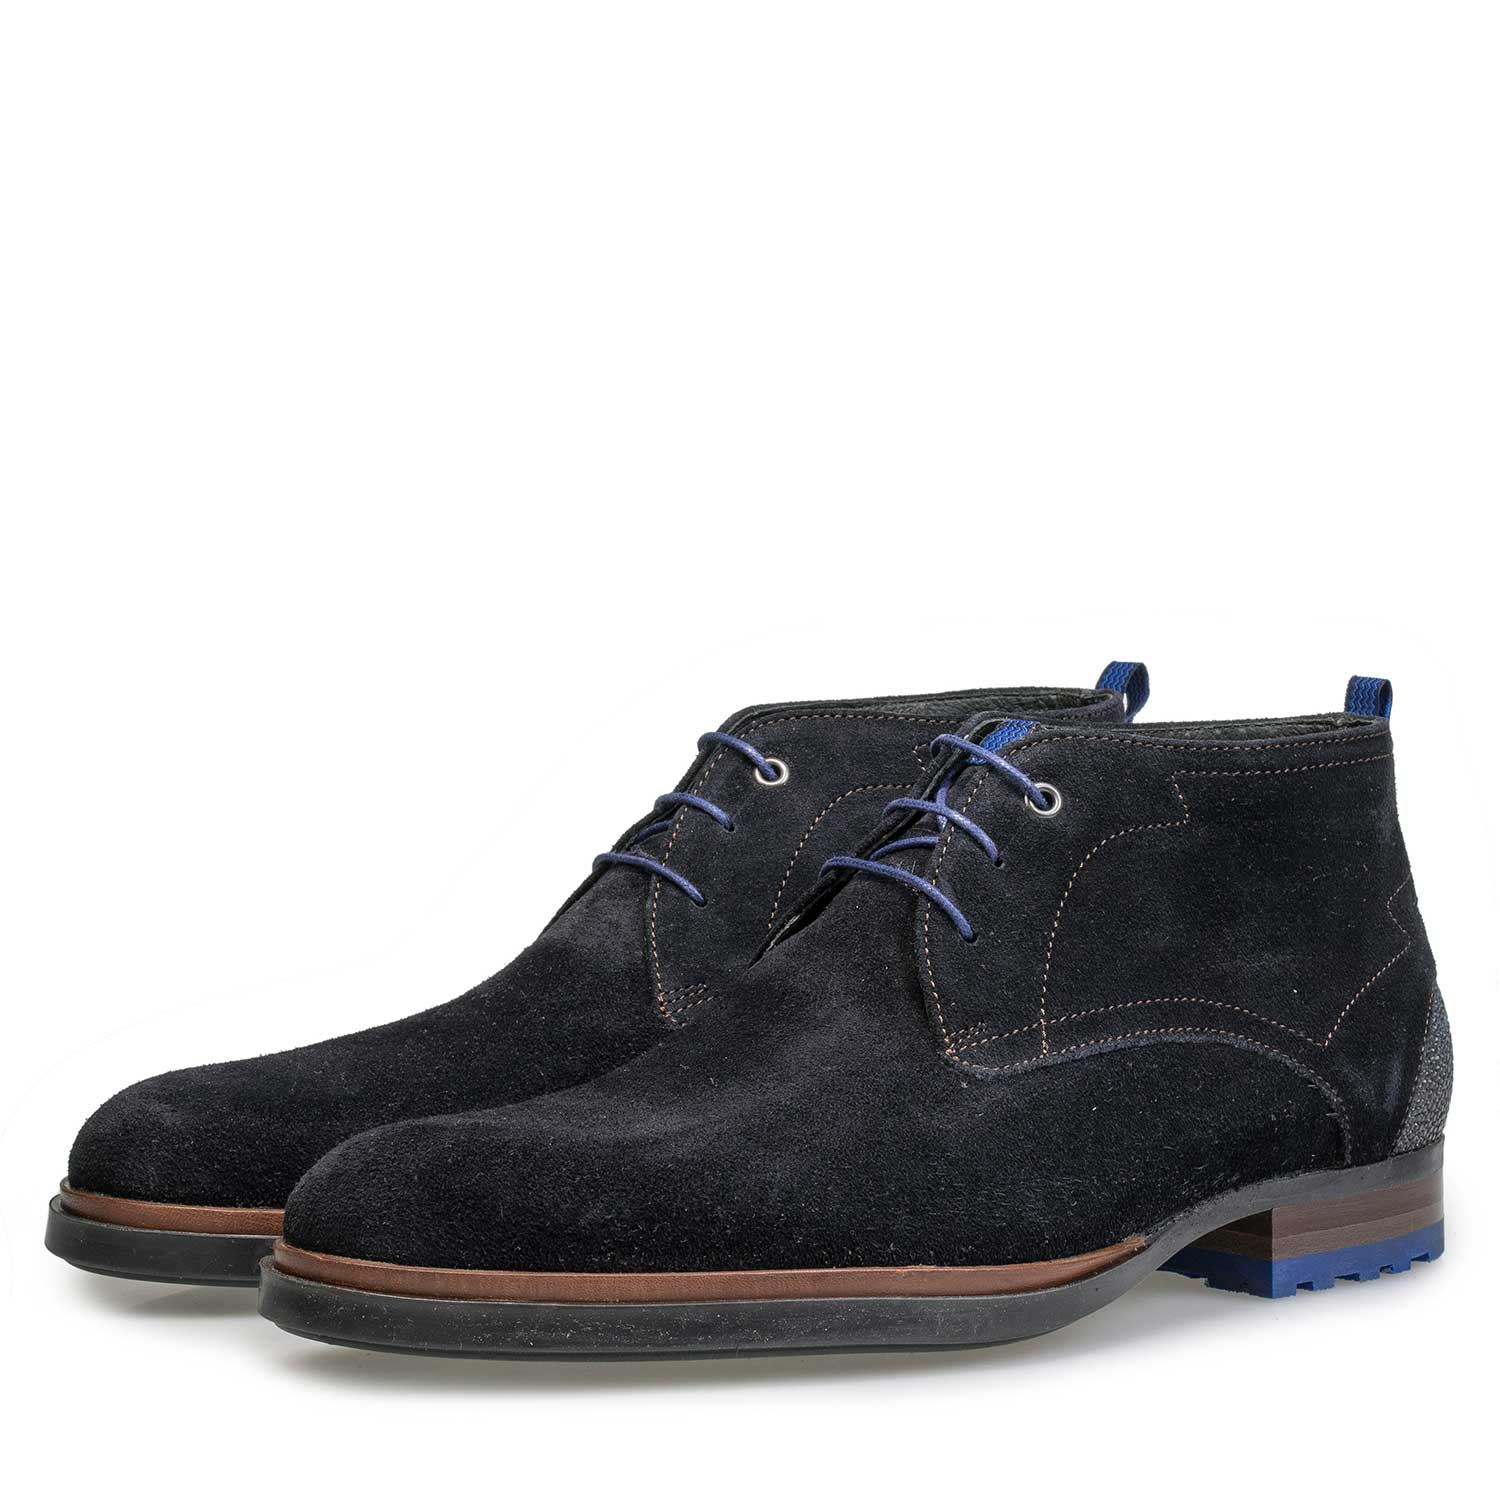 10947/10 - Dark blue suede leather lace boot